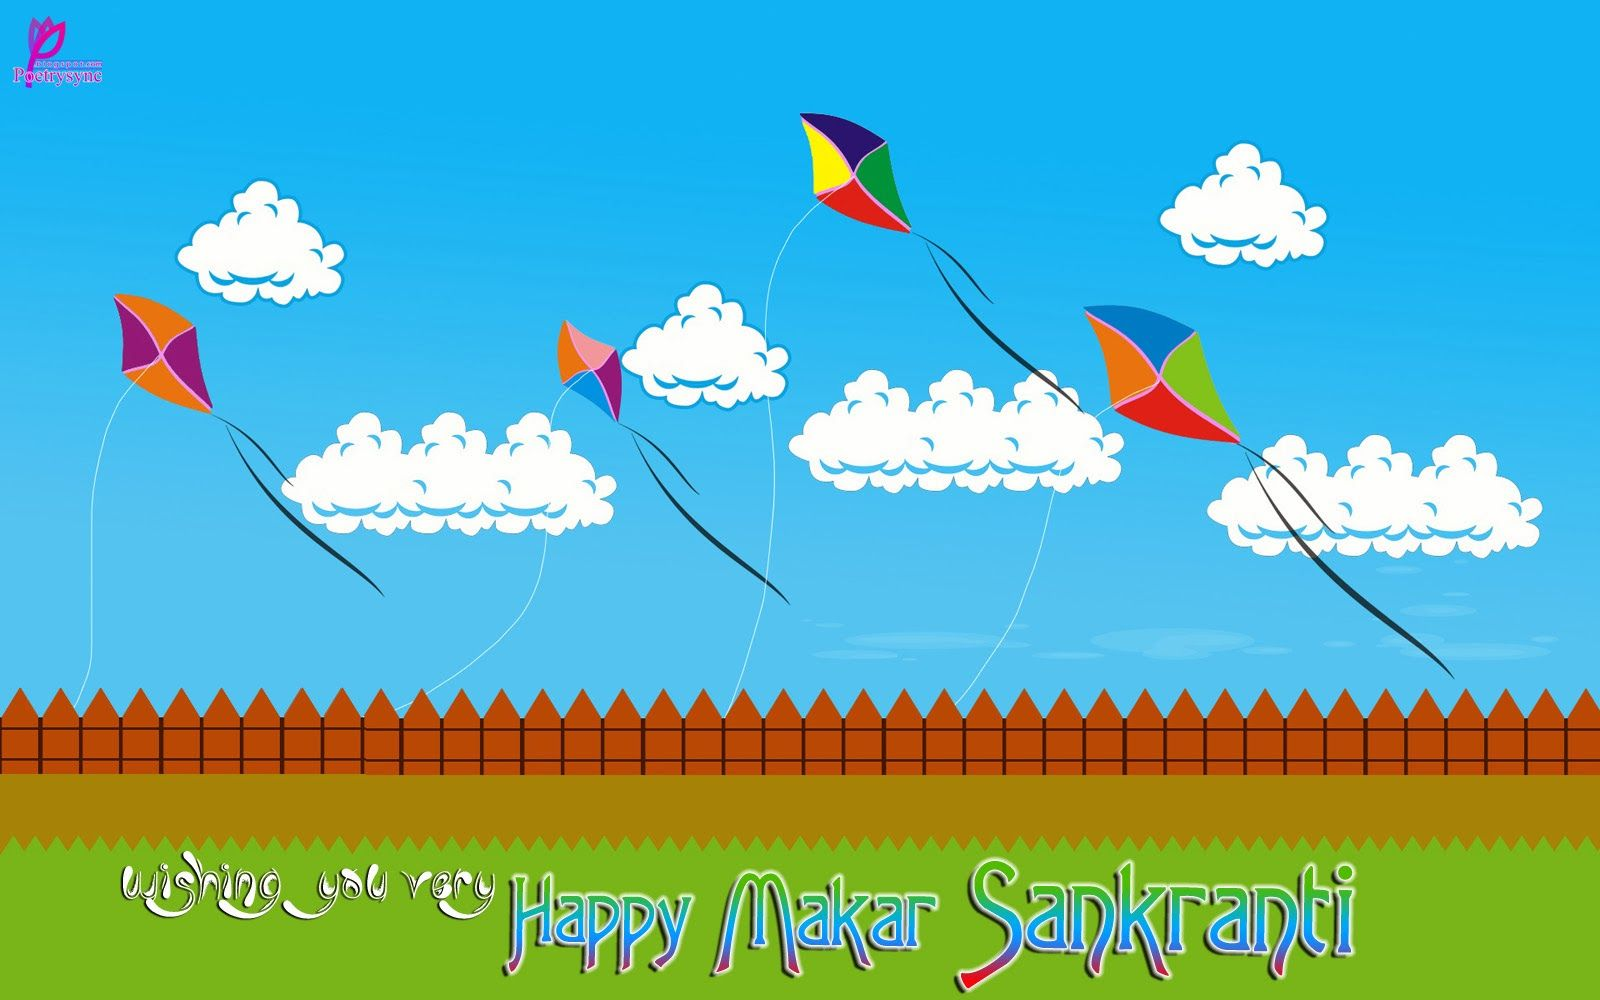 Poetry makar sankranti hd wallpapers with wishes quotes makar poetry makar sankranti hd wallpapers with wishes quotes m4hsunfo